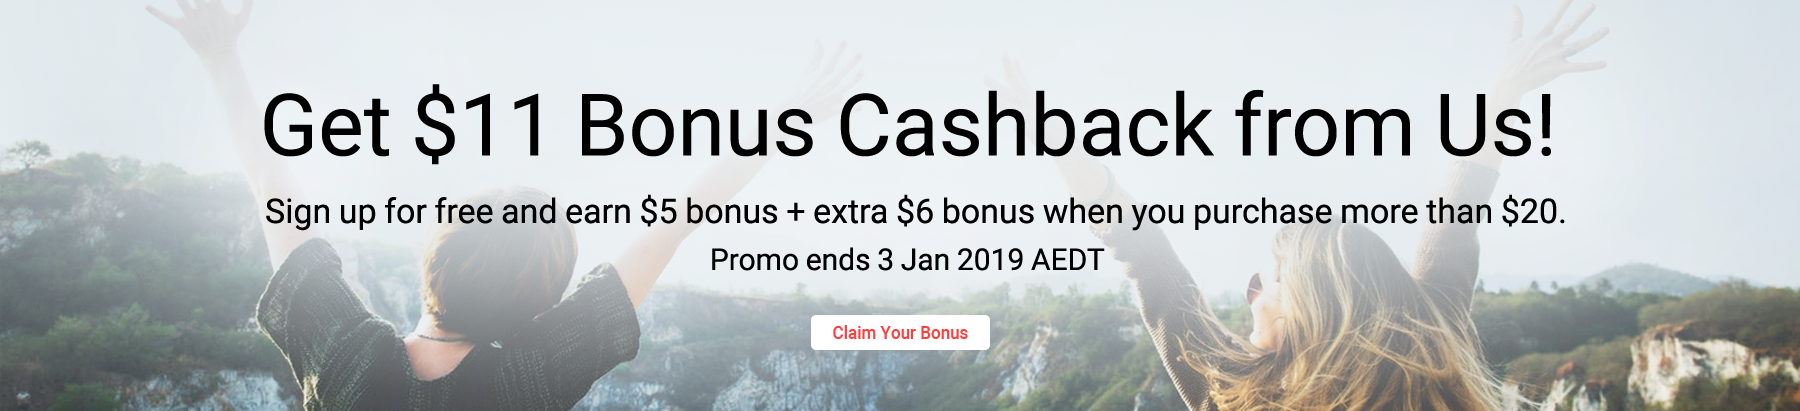 Here's $11 Bonus from your friend!